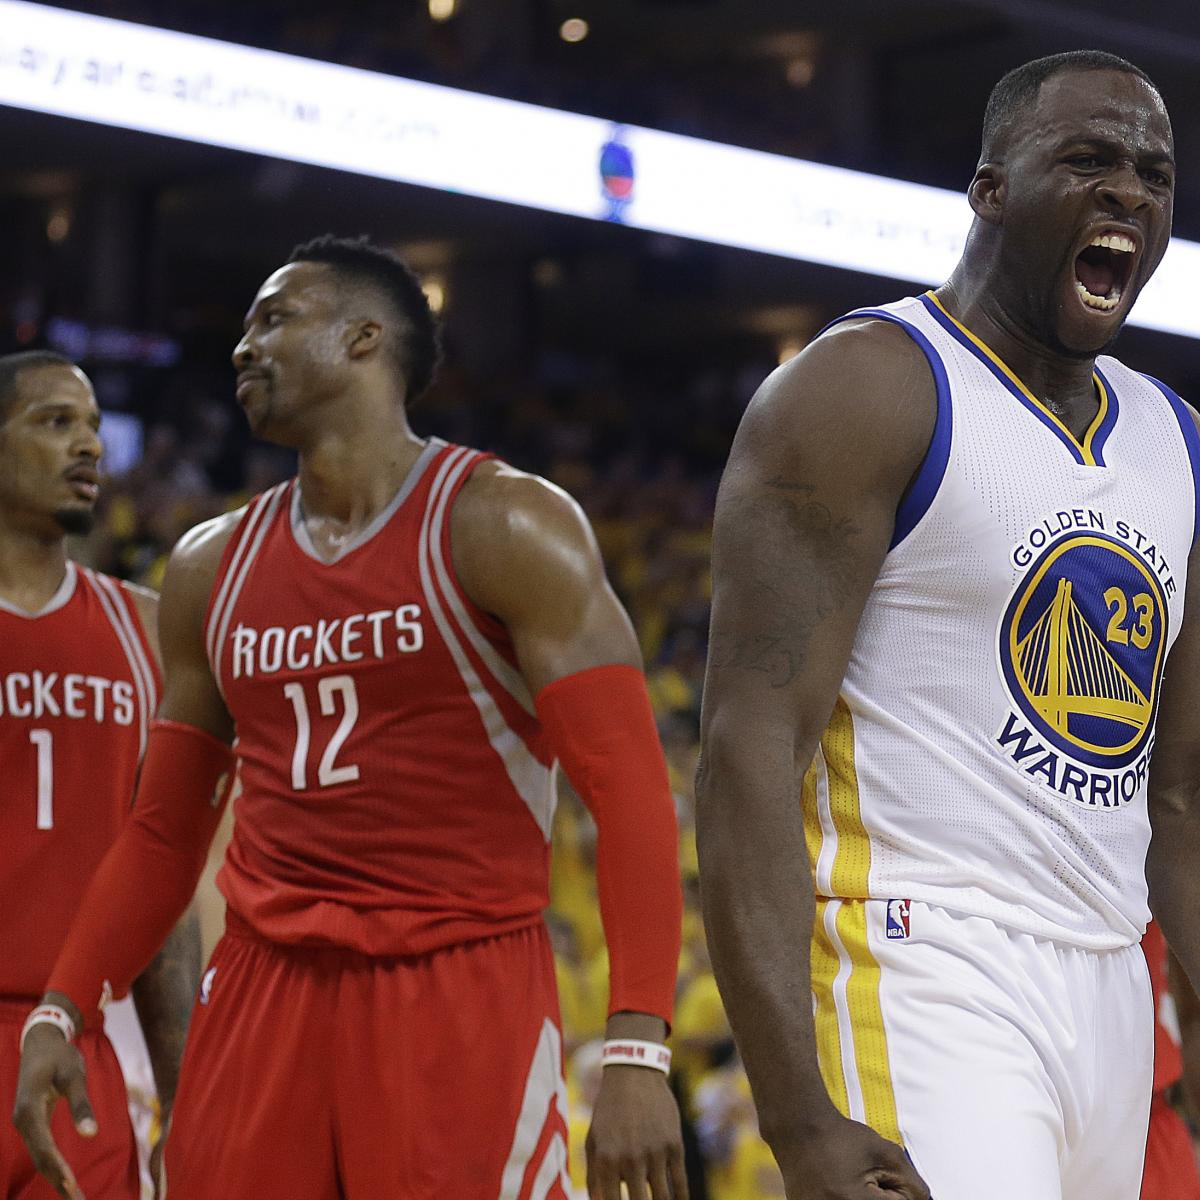 Rockets Vs. Warriors: Game 2 Score And Twitter Reaction